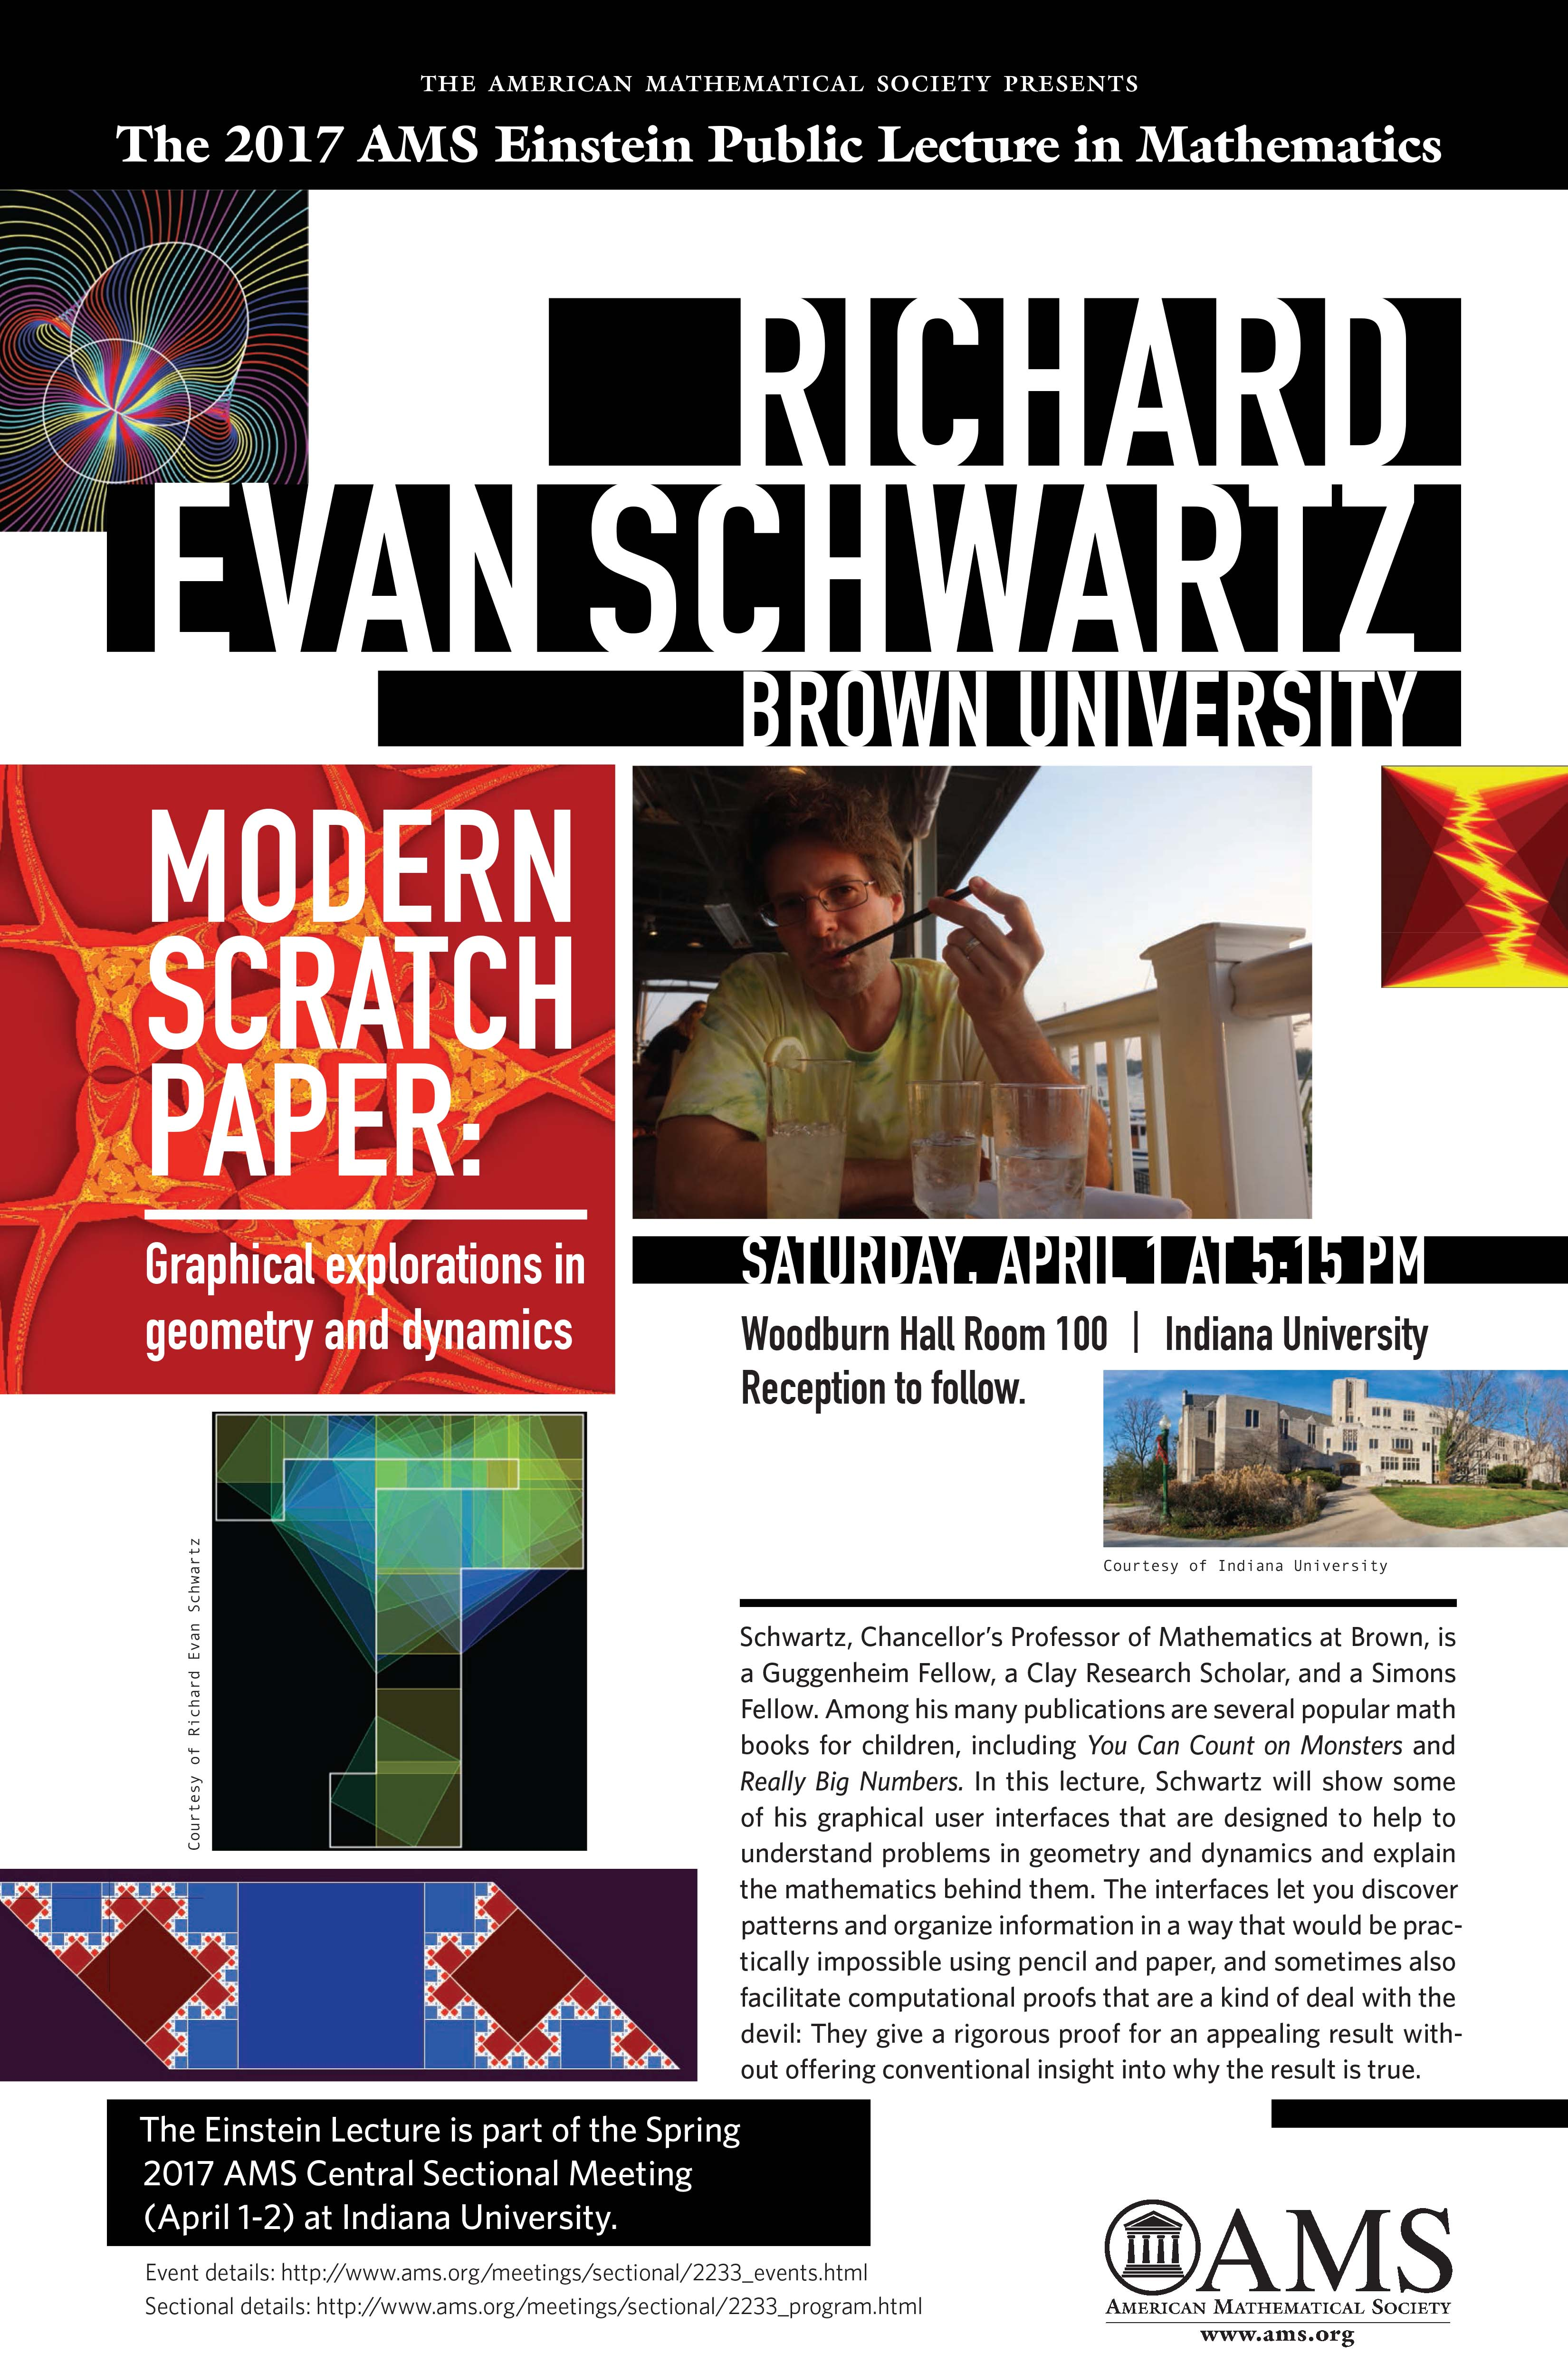 Richard Evan Schwartz Brown University